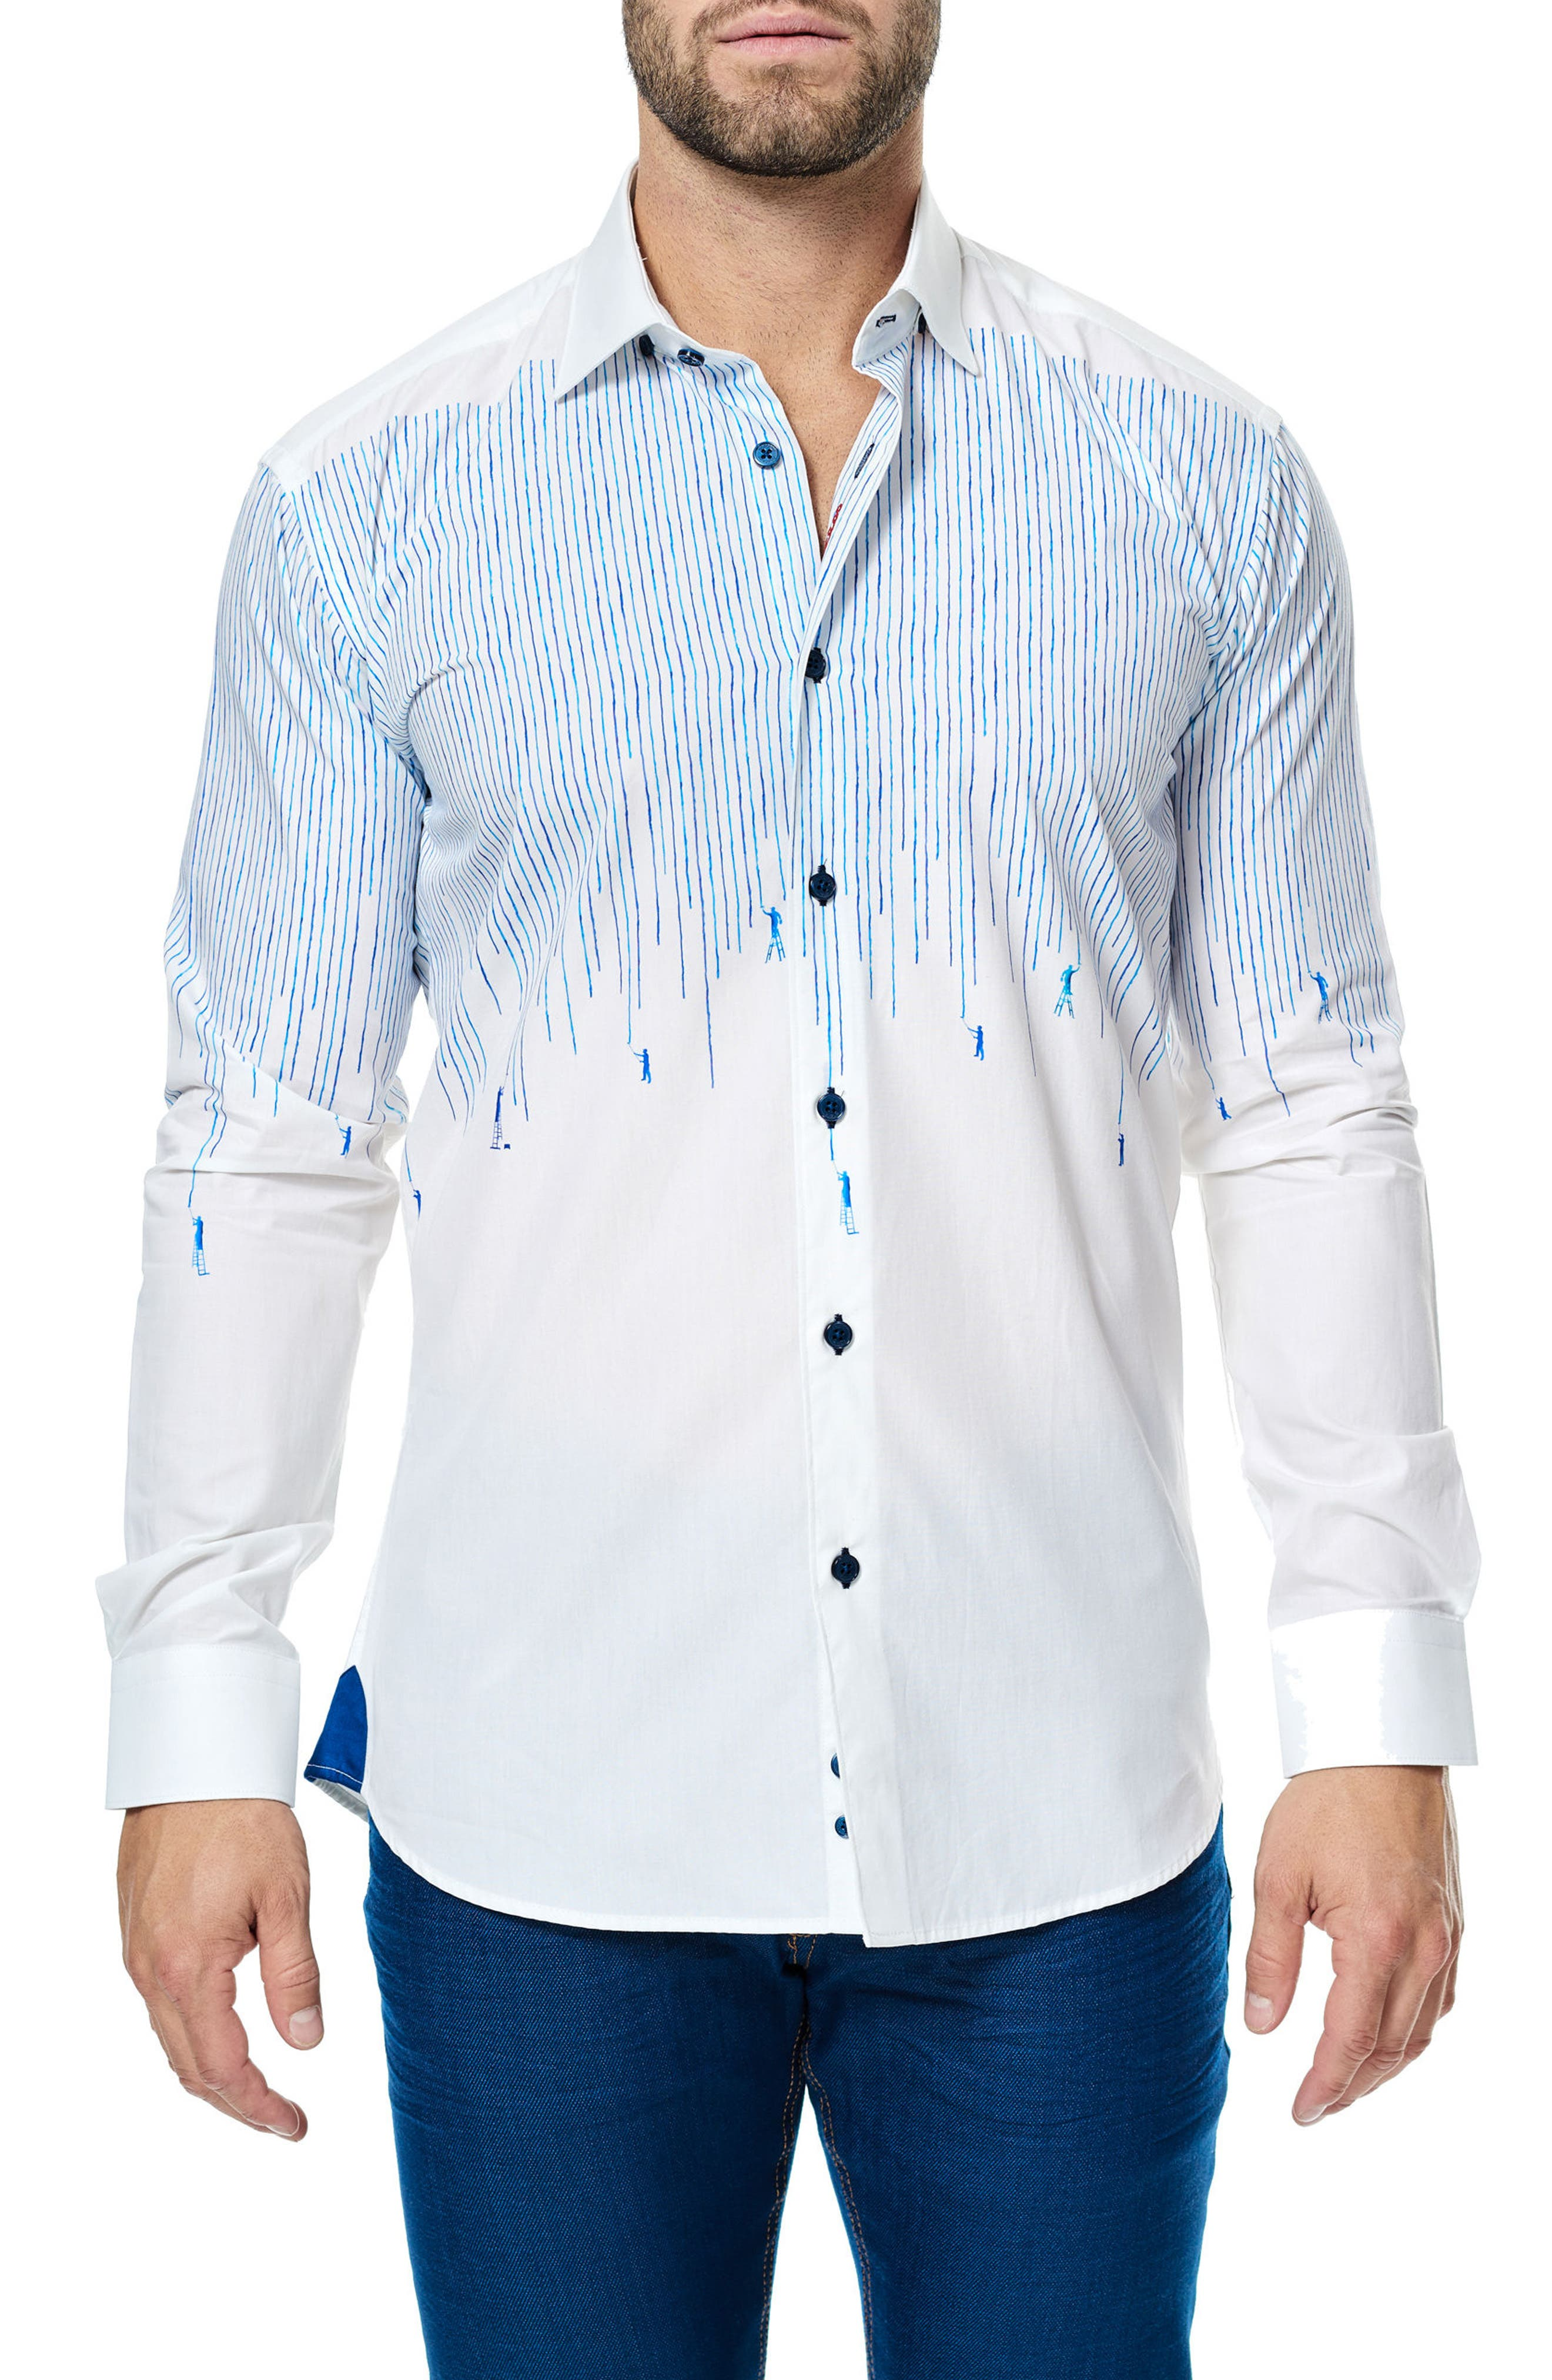 Maceoo Luxor Painter Sport Shirt